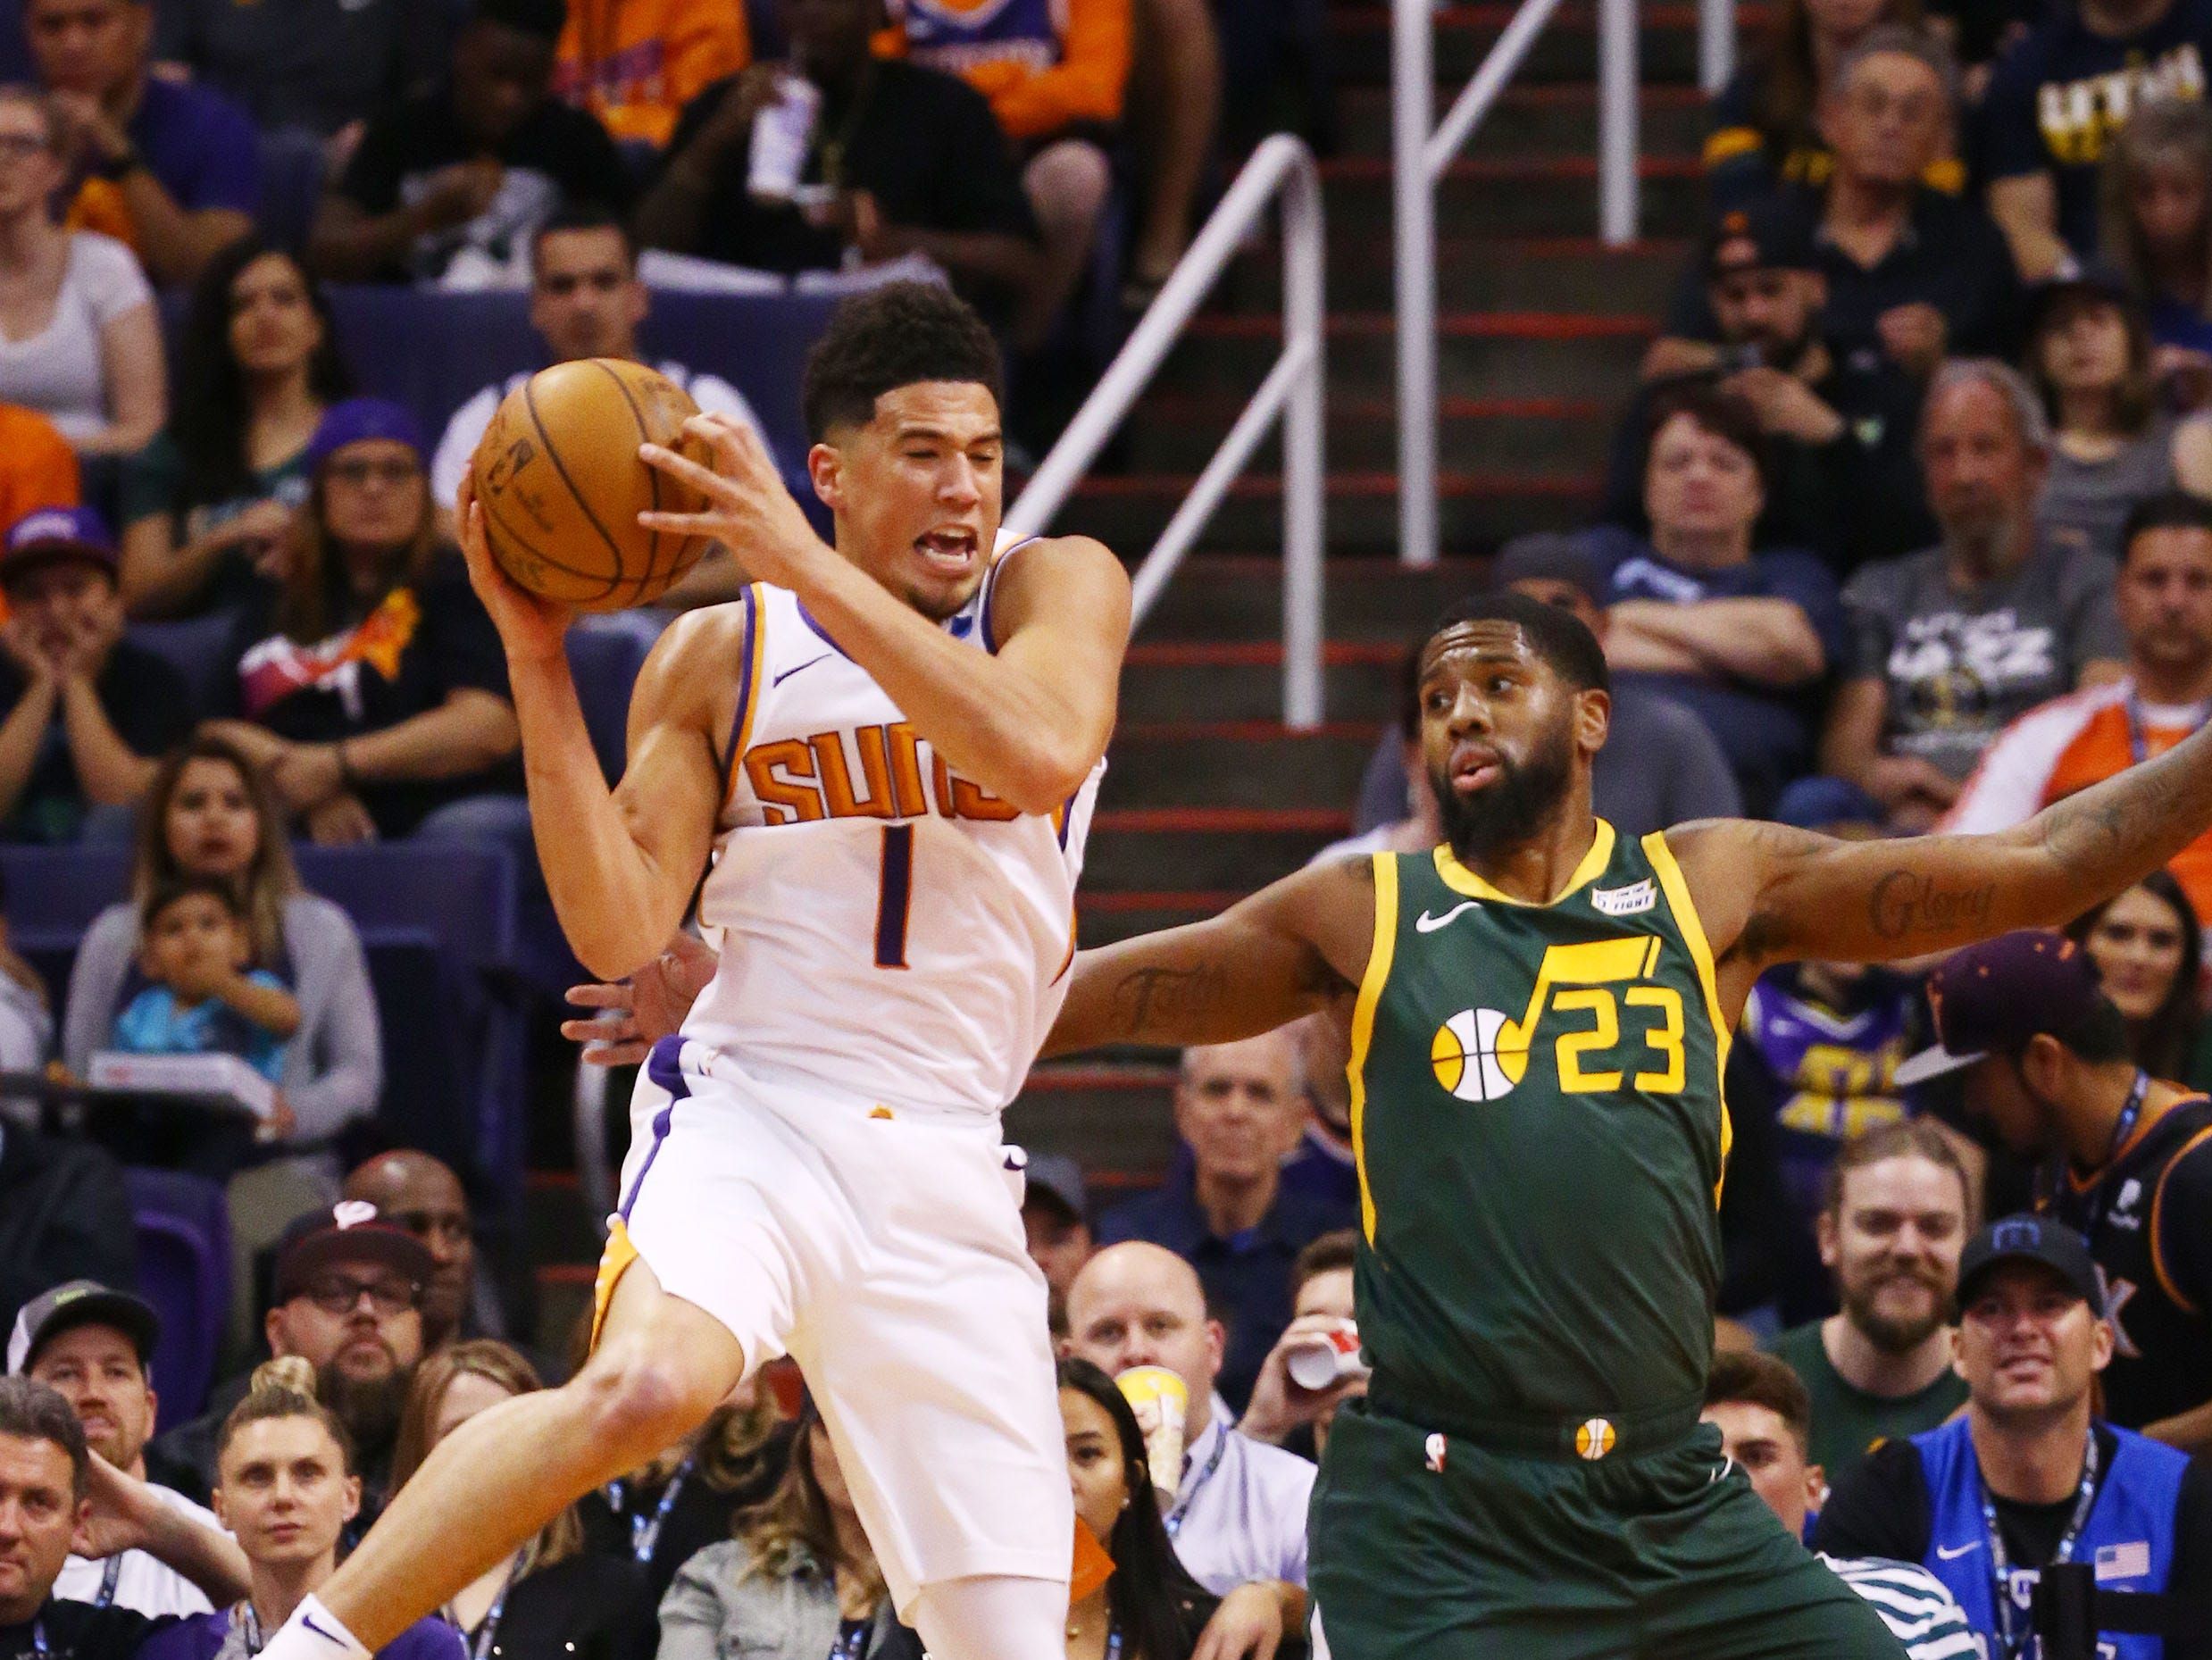 Phoenix Suns guard Devin Booker (1) lands on the foot of Utah Jazz forward Royce O'Neale (23) then rolls his ankle in the first half on Apr. 3, 2019 at Talking Stick Resort Arena in Phoenix, Ariz. Devin Booker helped off the court to the locker room.